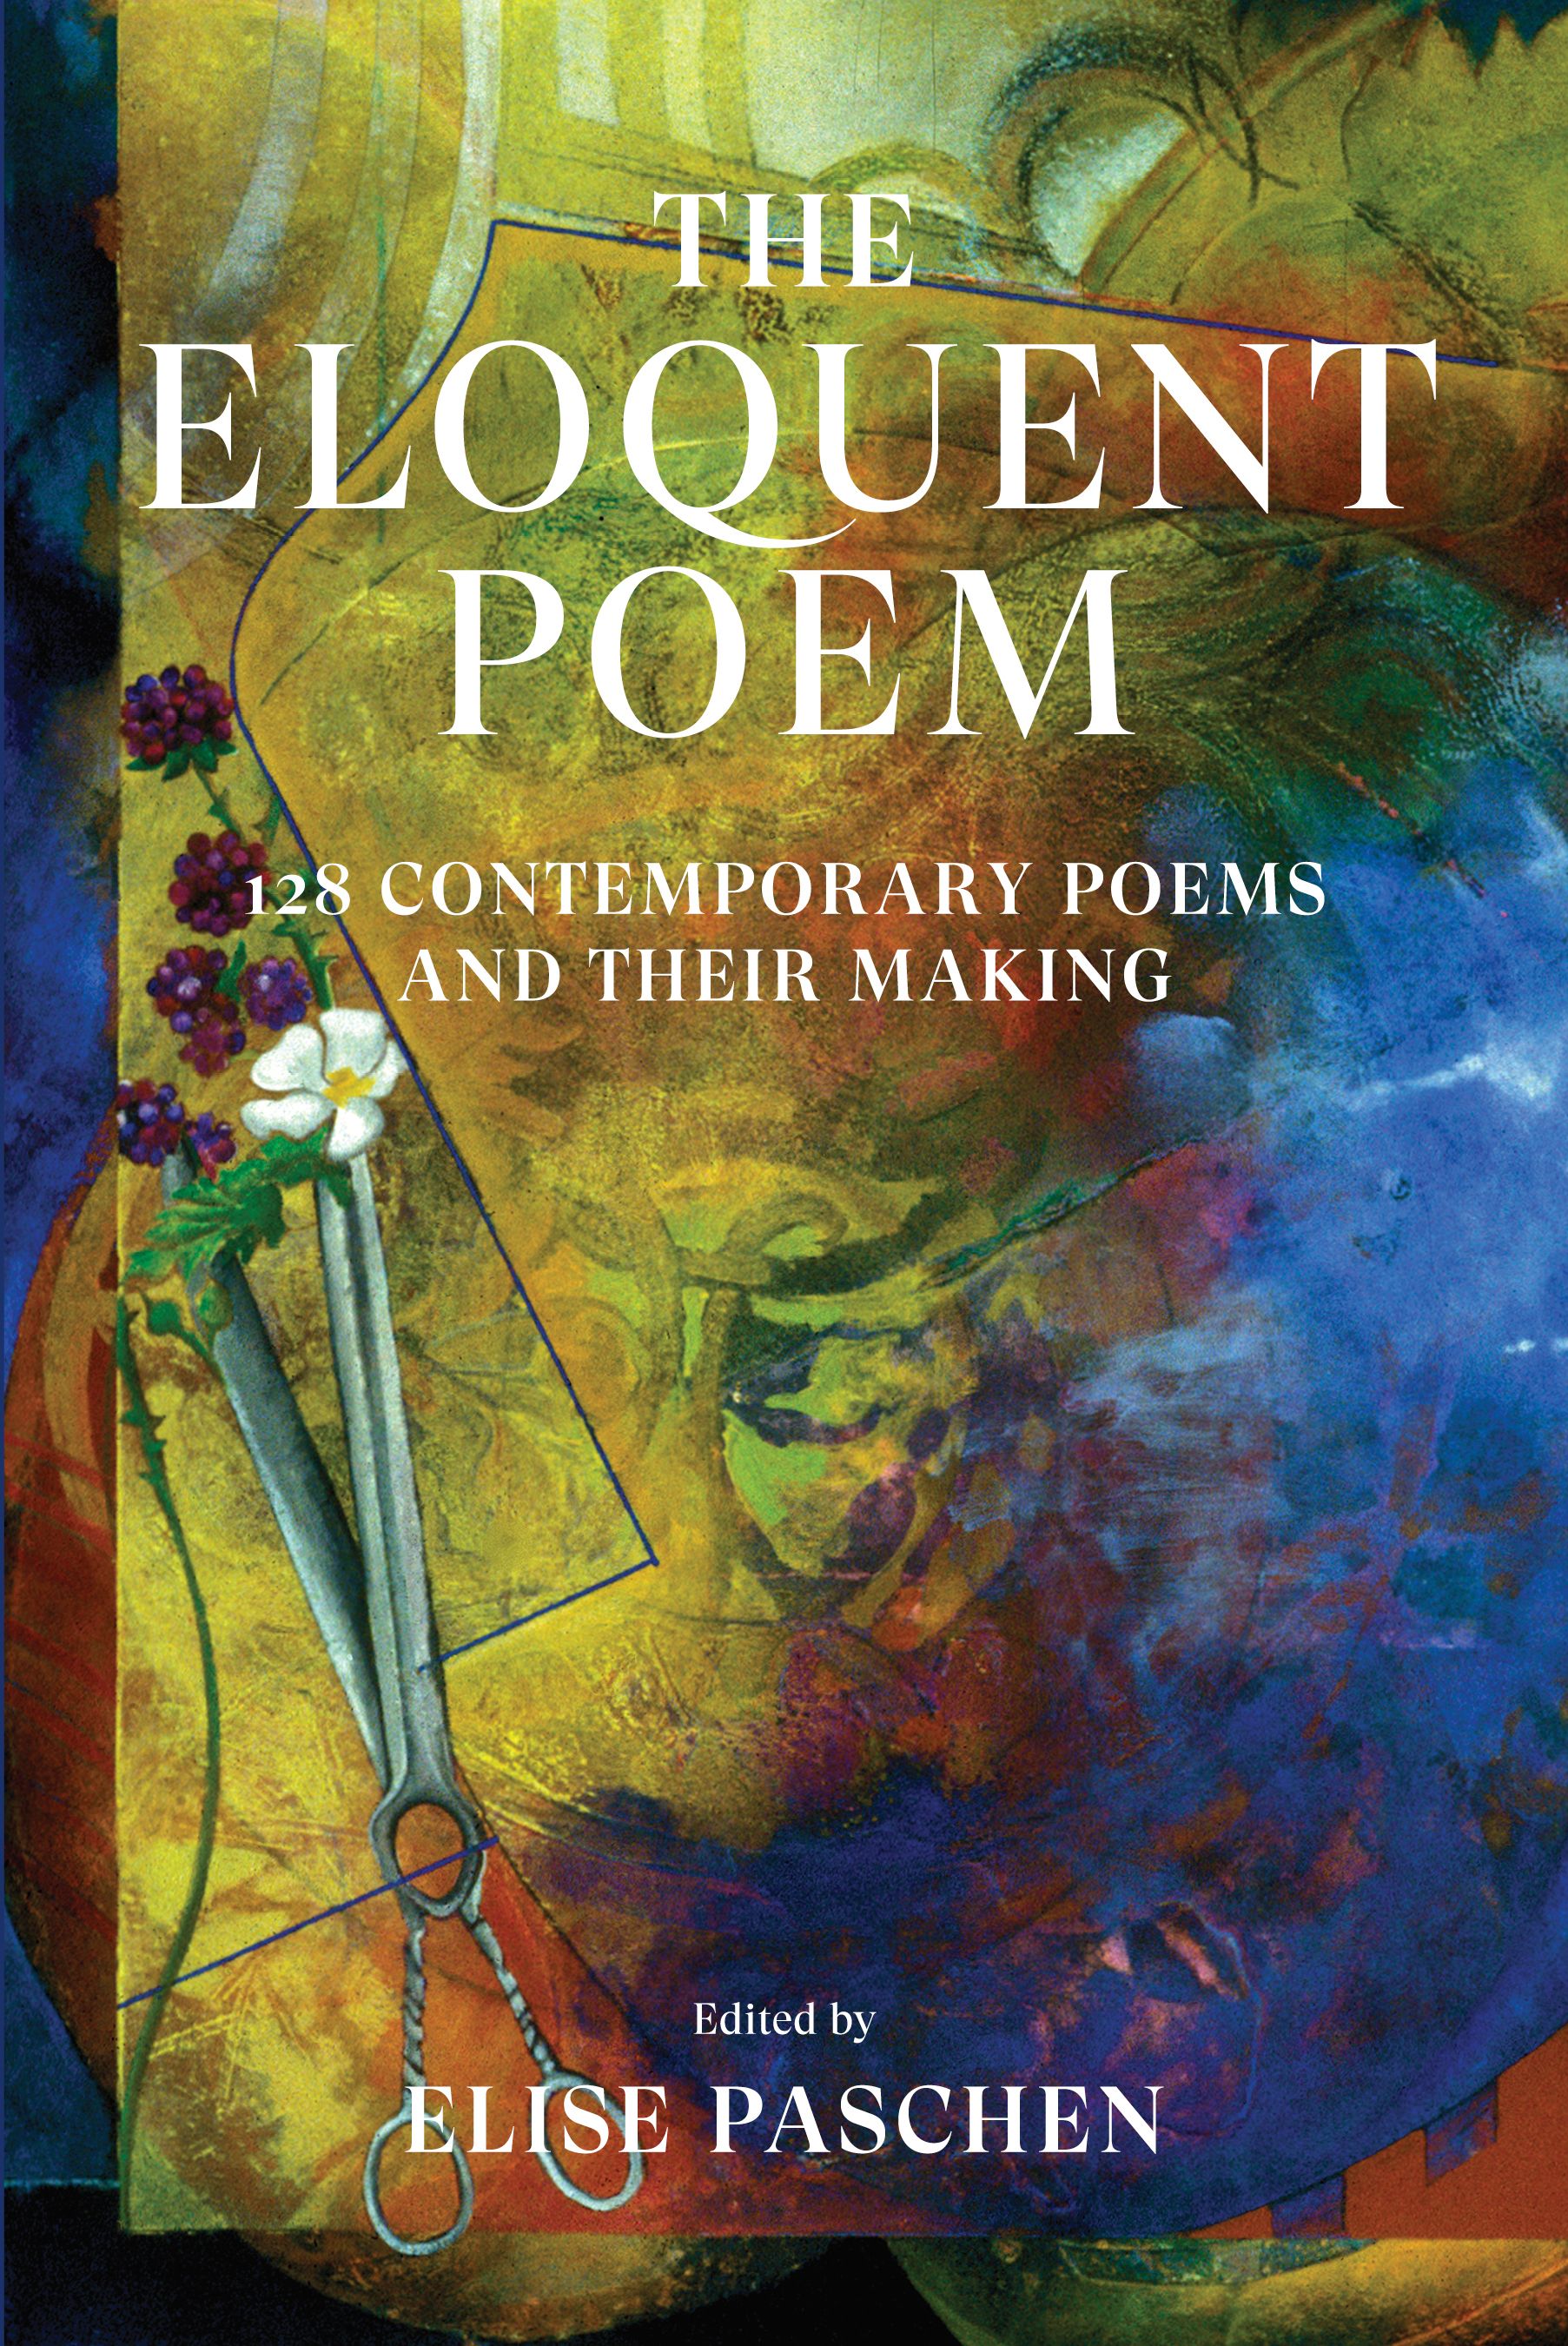 PERSEA_EloquentPoem_Cover_REVISED.jpg